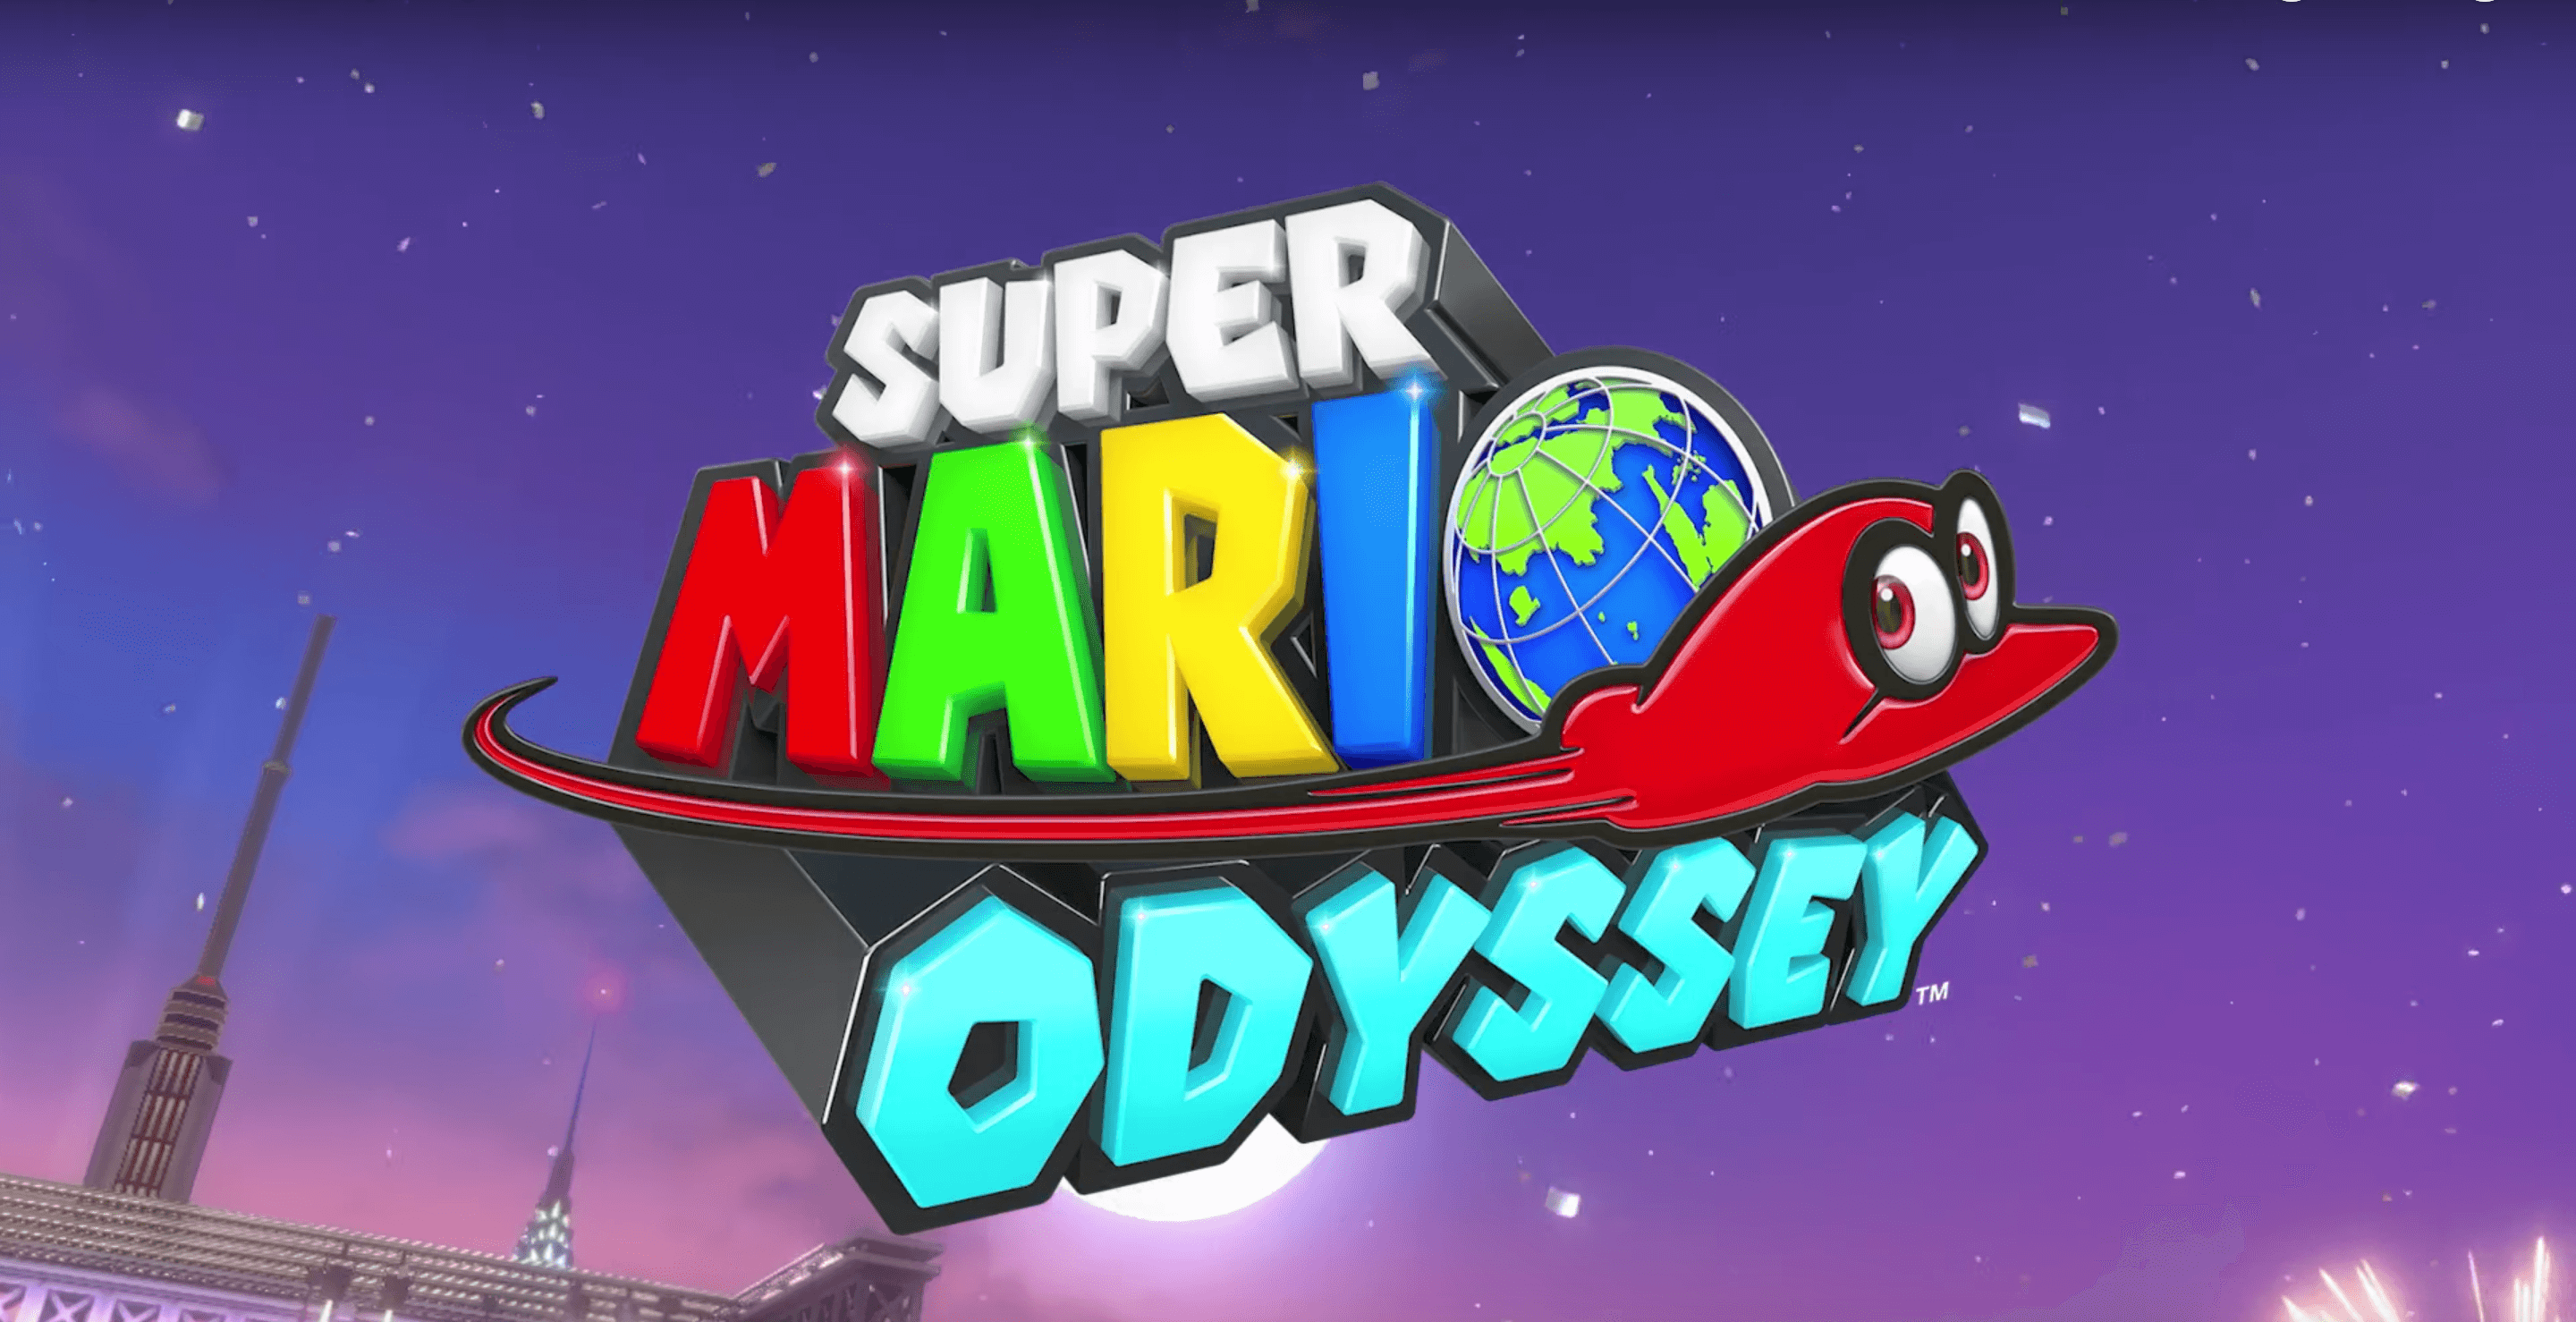 Super Mario Odyssey Throws Its Hat Into The Ring On October 27th